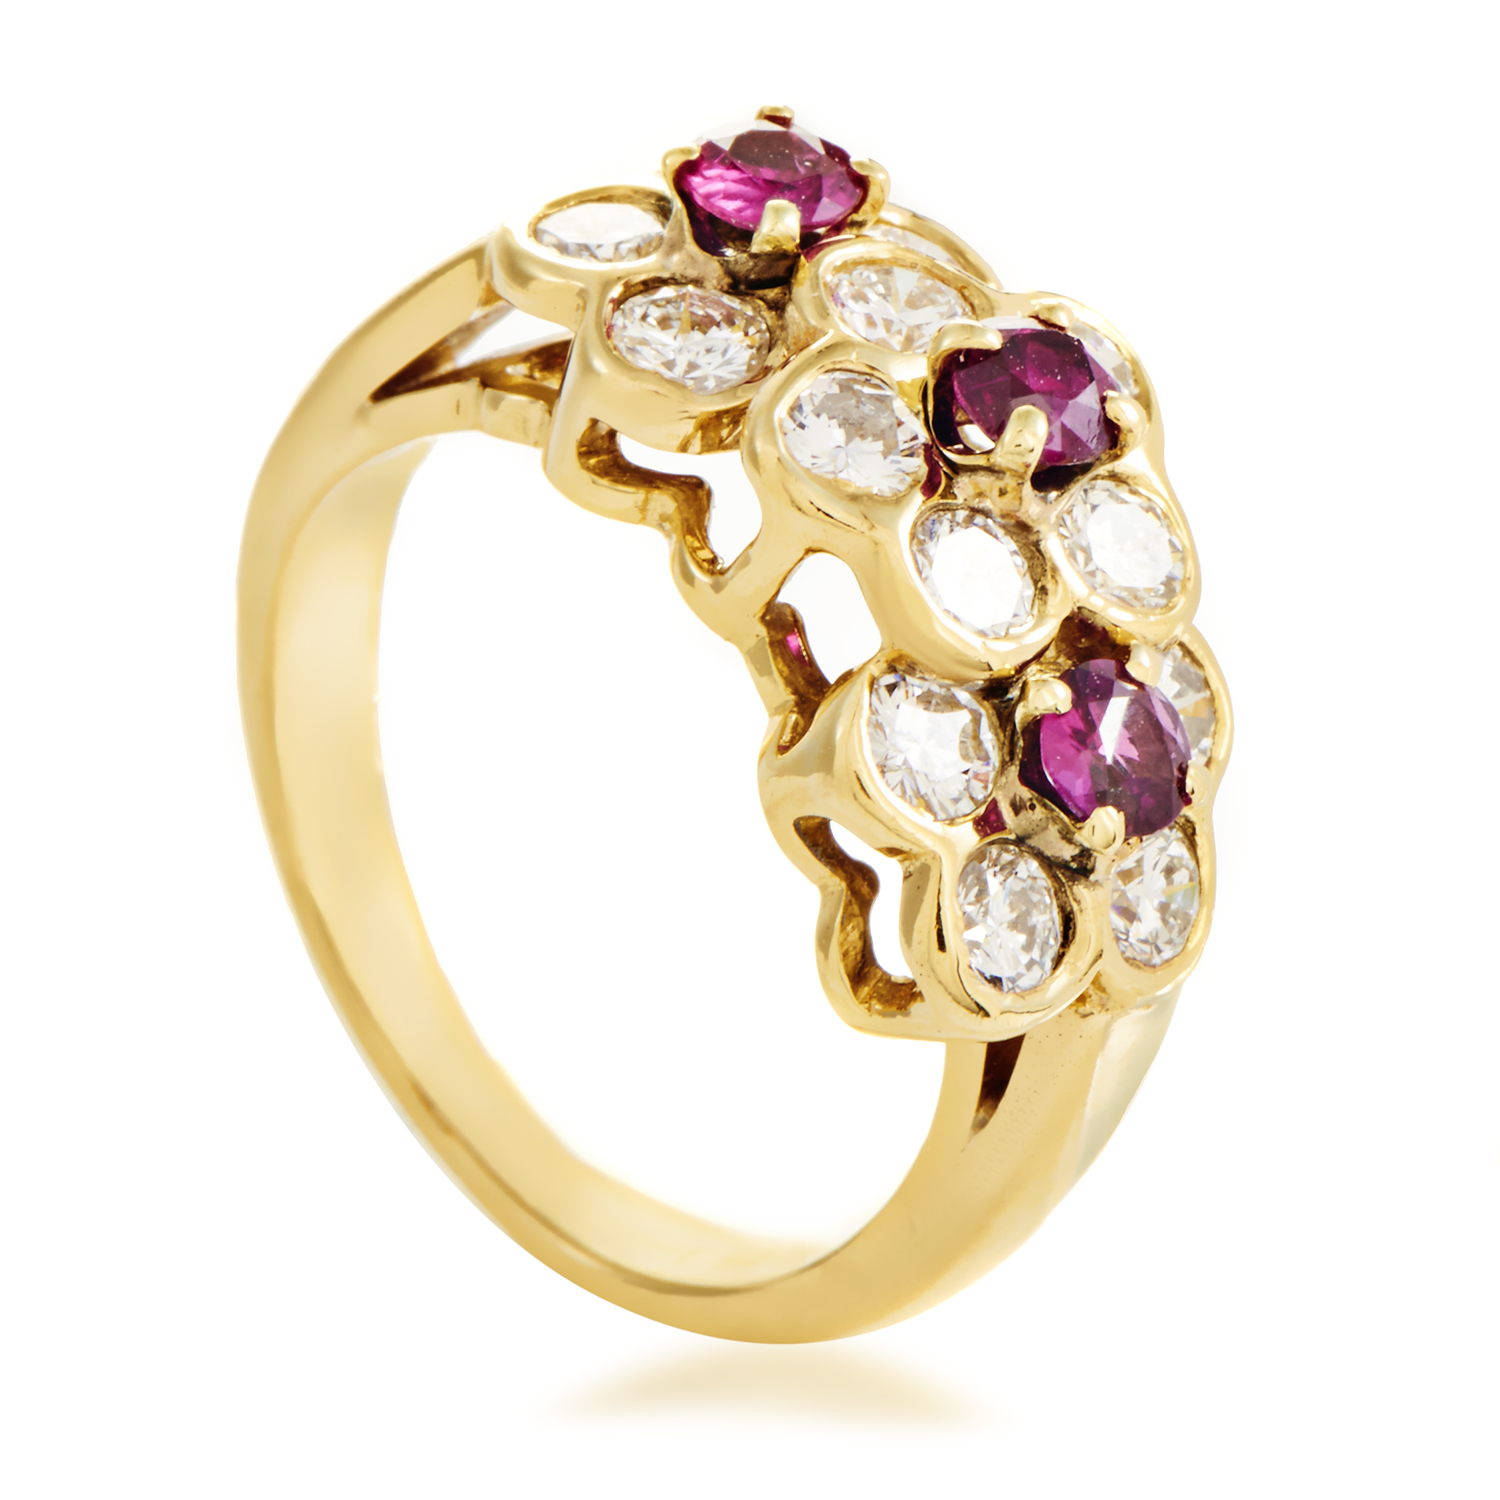 Van Cleef & Arpels Women's 18K Yellow Gold Diamond & Ruby Flowers Band Ring